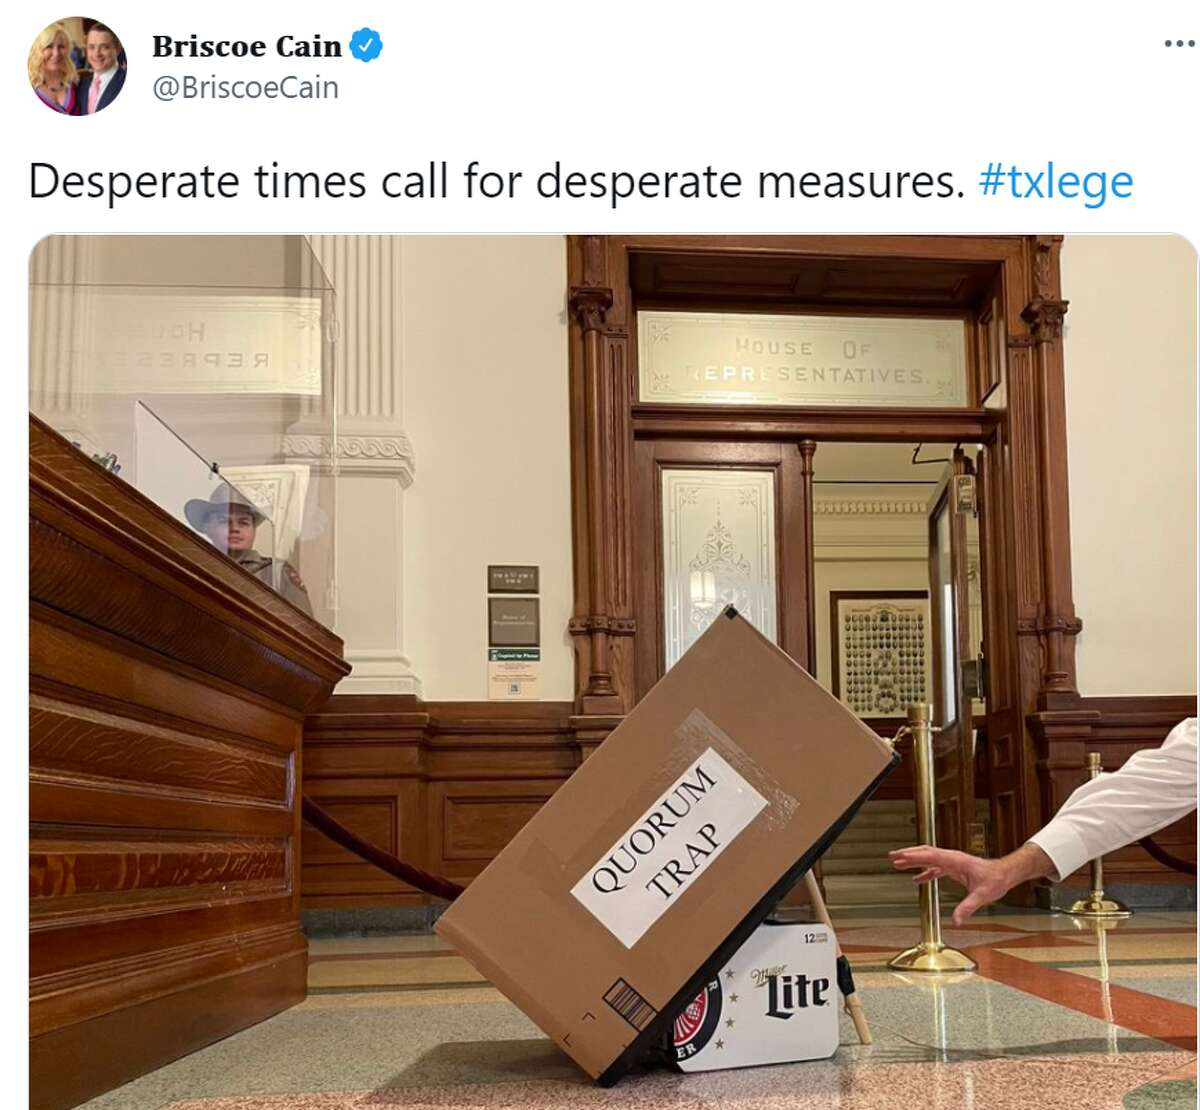 """State Rep. Briscoe Cain tweeted a photo of a case of Miller Lite underneath a cardboard box labeled """"Quorum Trap."""" The box is held up with a stick and a hand is reaching for the case of beer."""